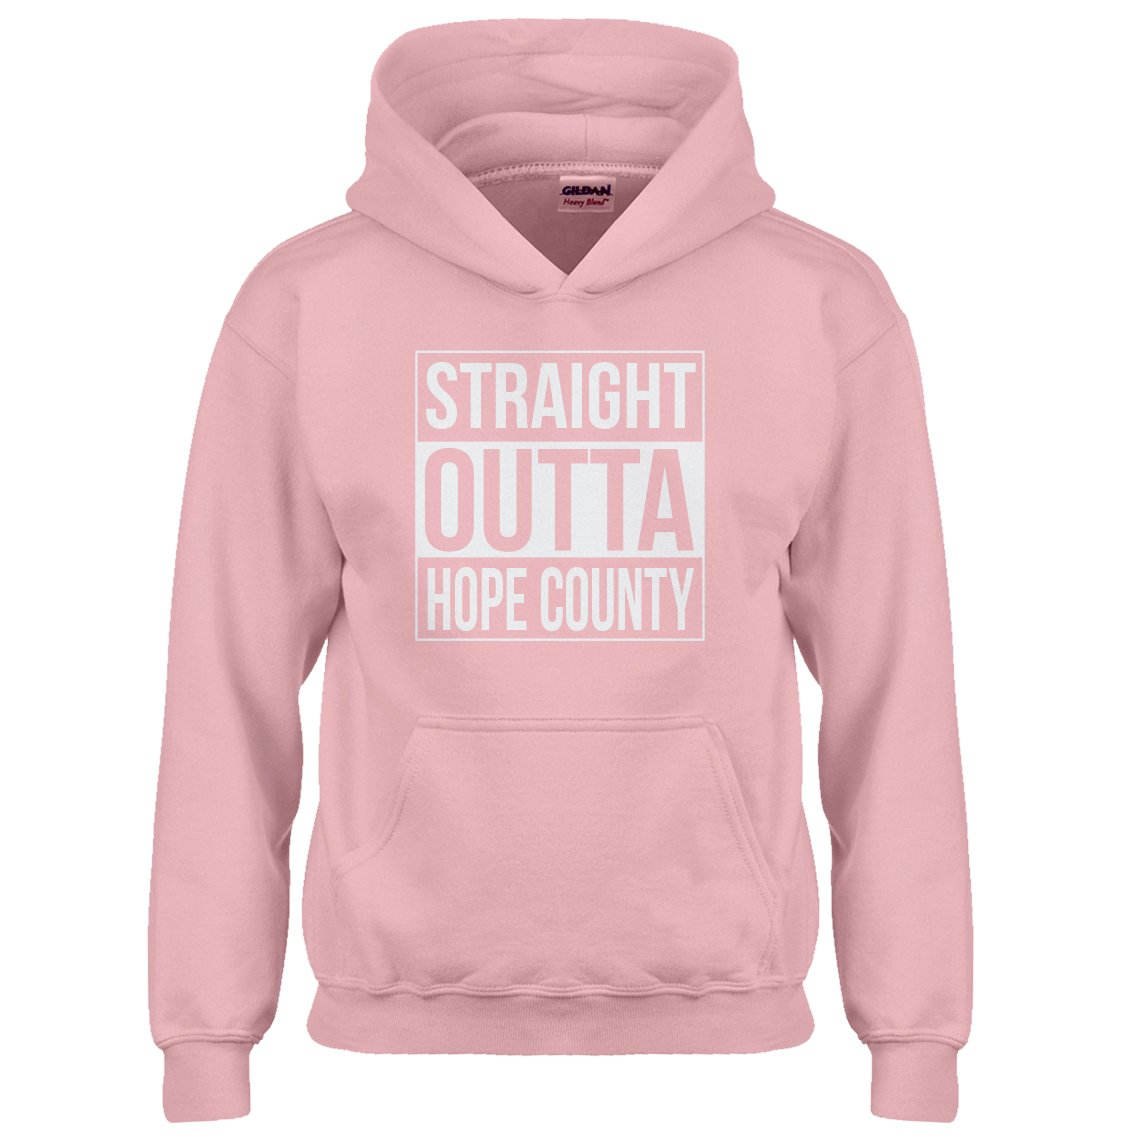 Indica Plateau Youth Straight Outta Hope County Kids Hoodie 3422-Z